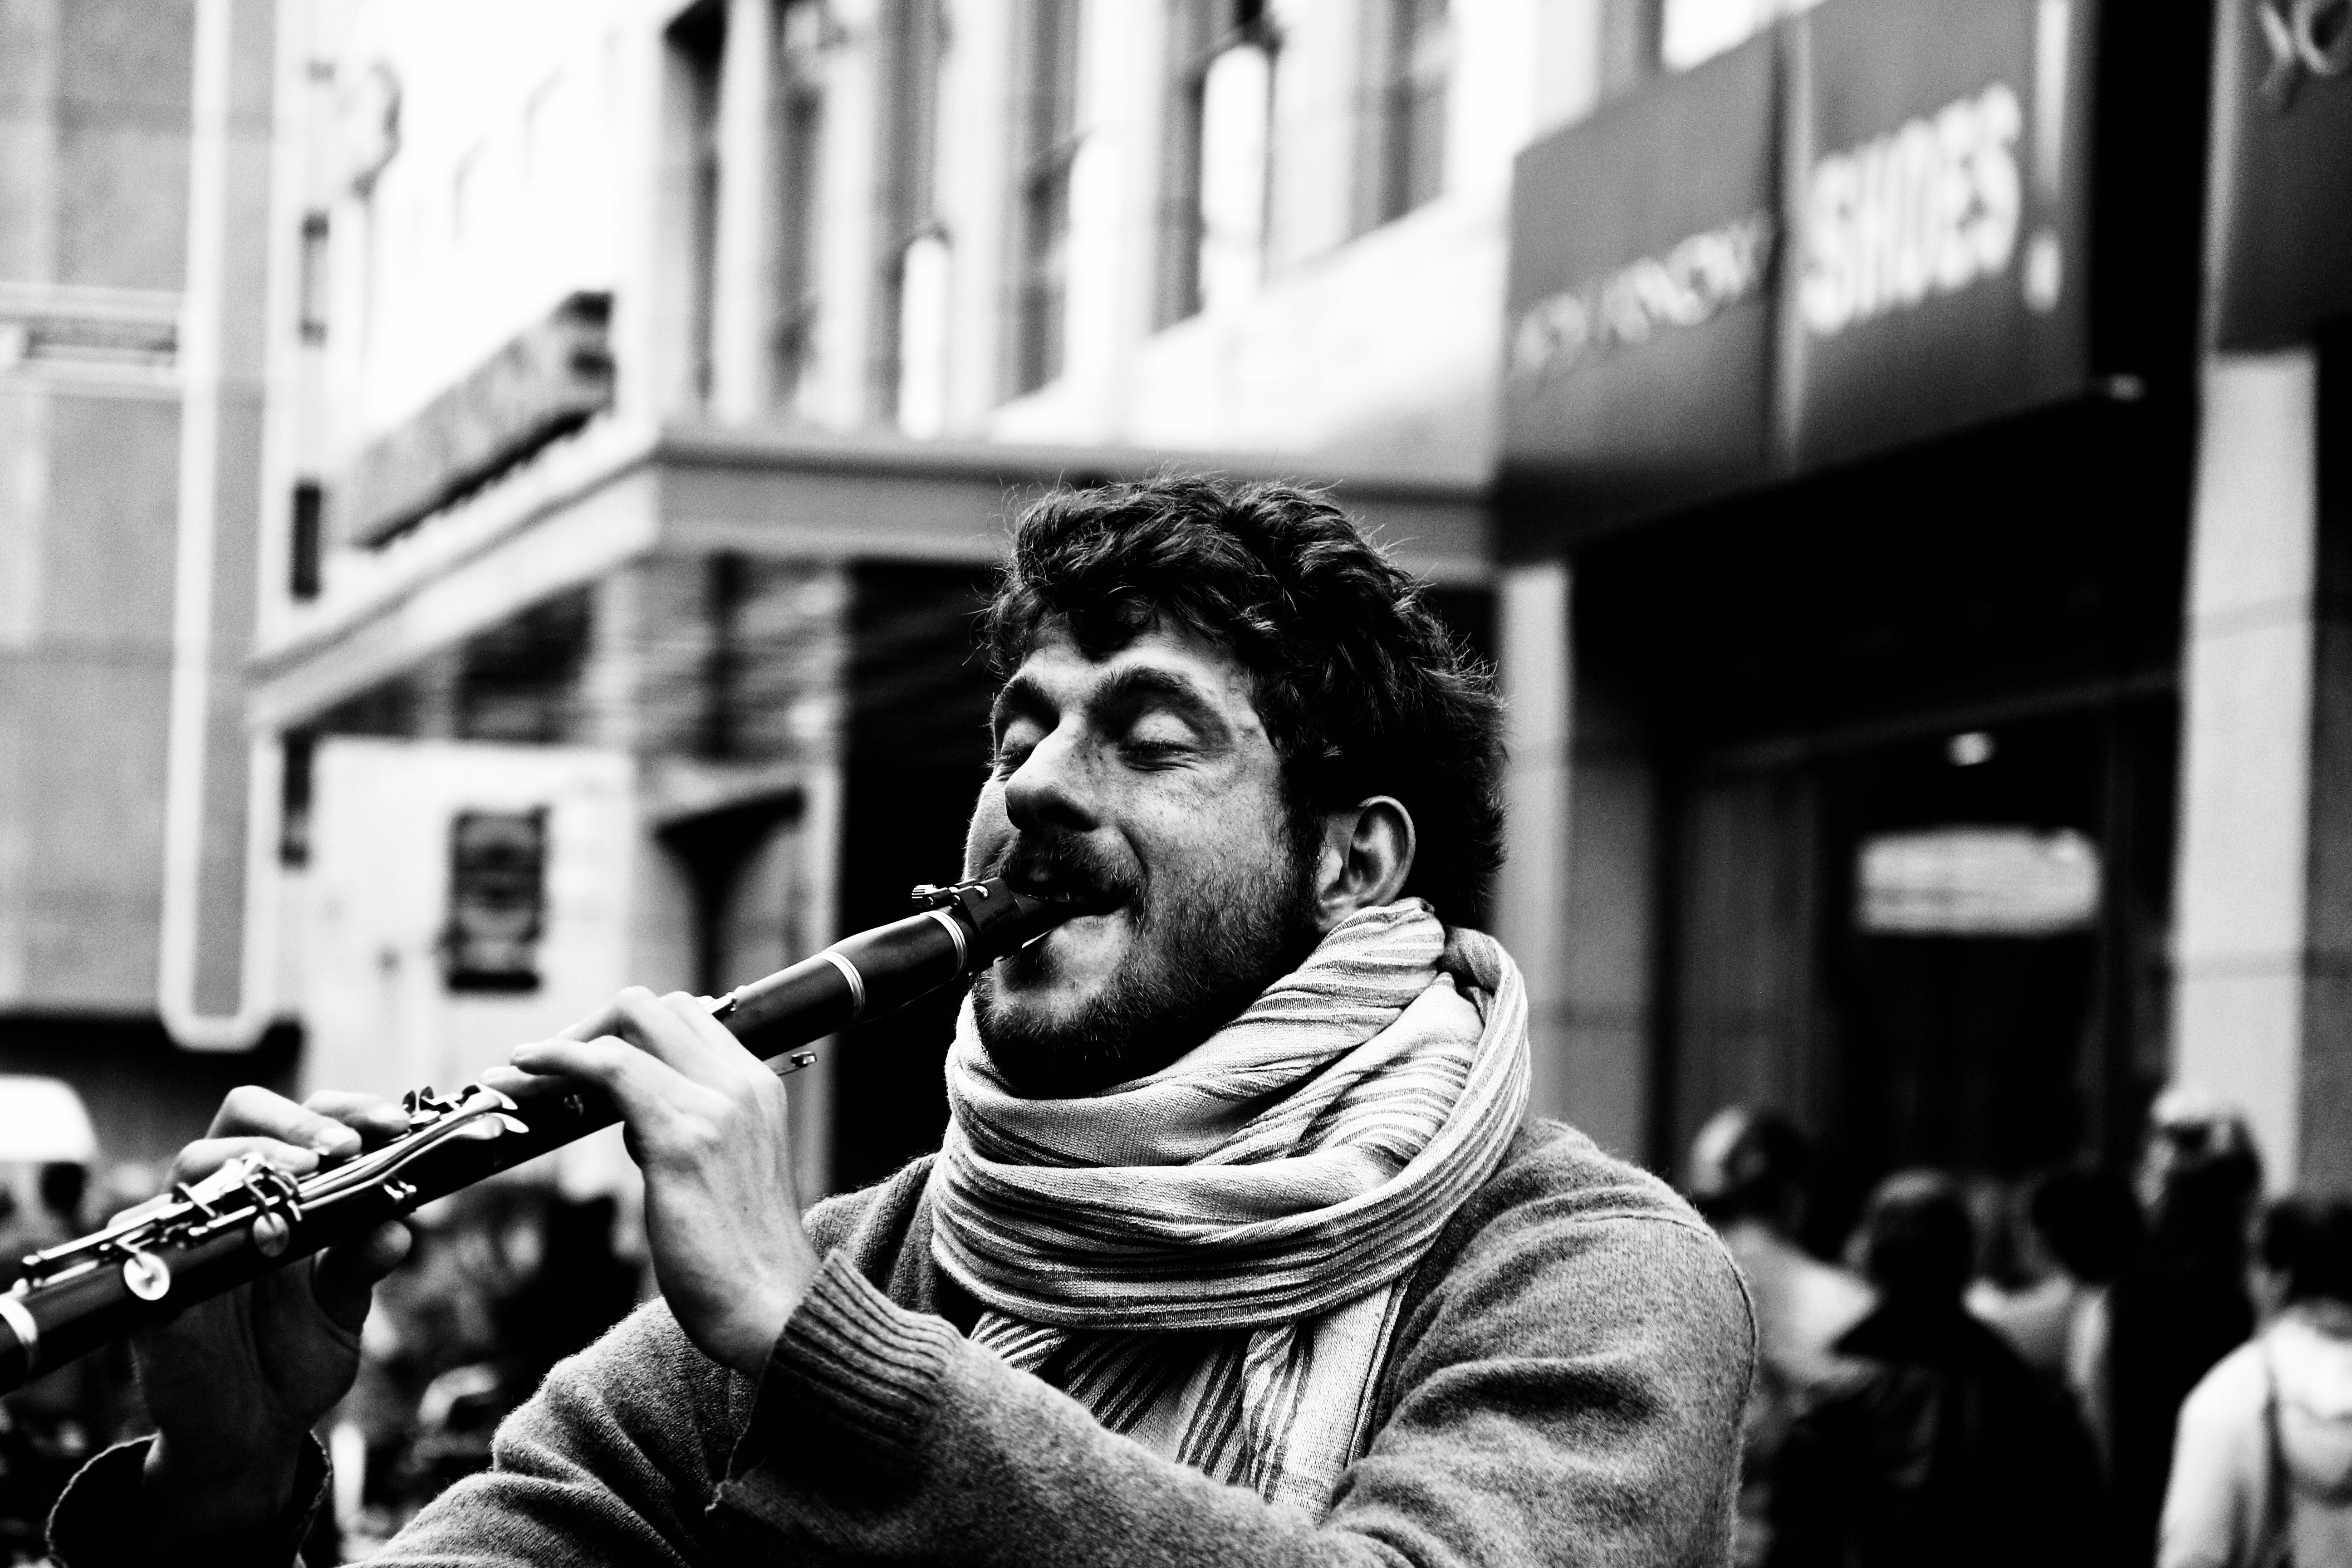 Grayscale Photography of Man Playing Clarinet